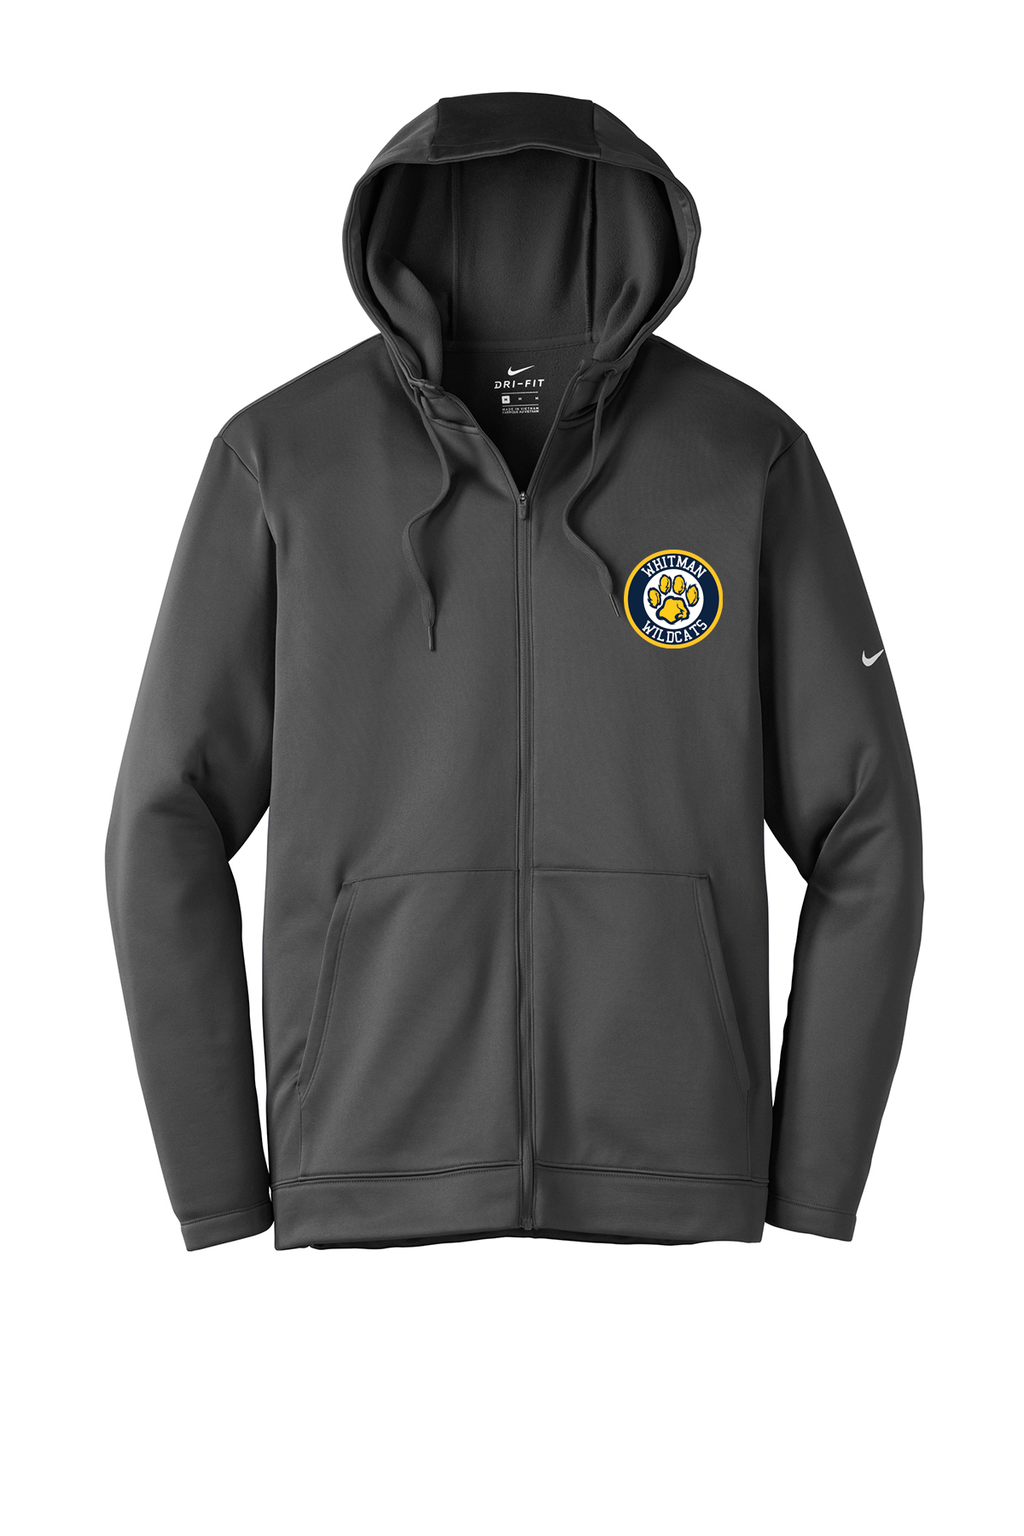 Whitman Wildcats Nike Therma-FIT Full Zip Hoodie